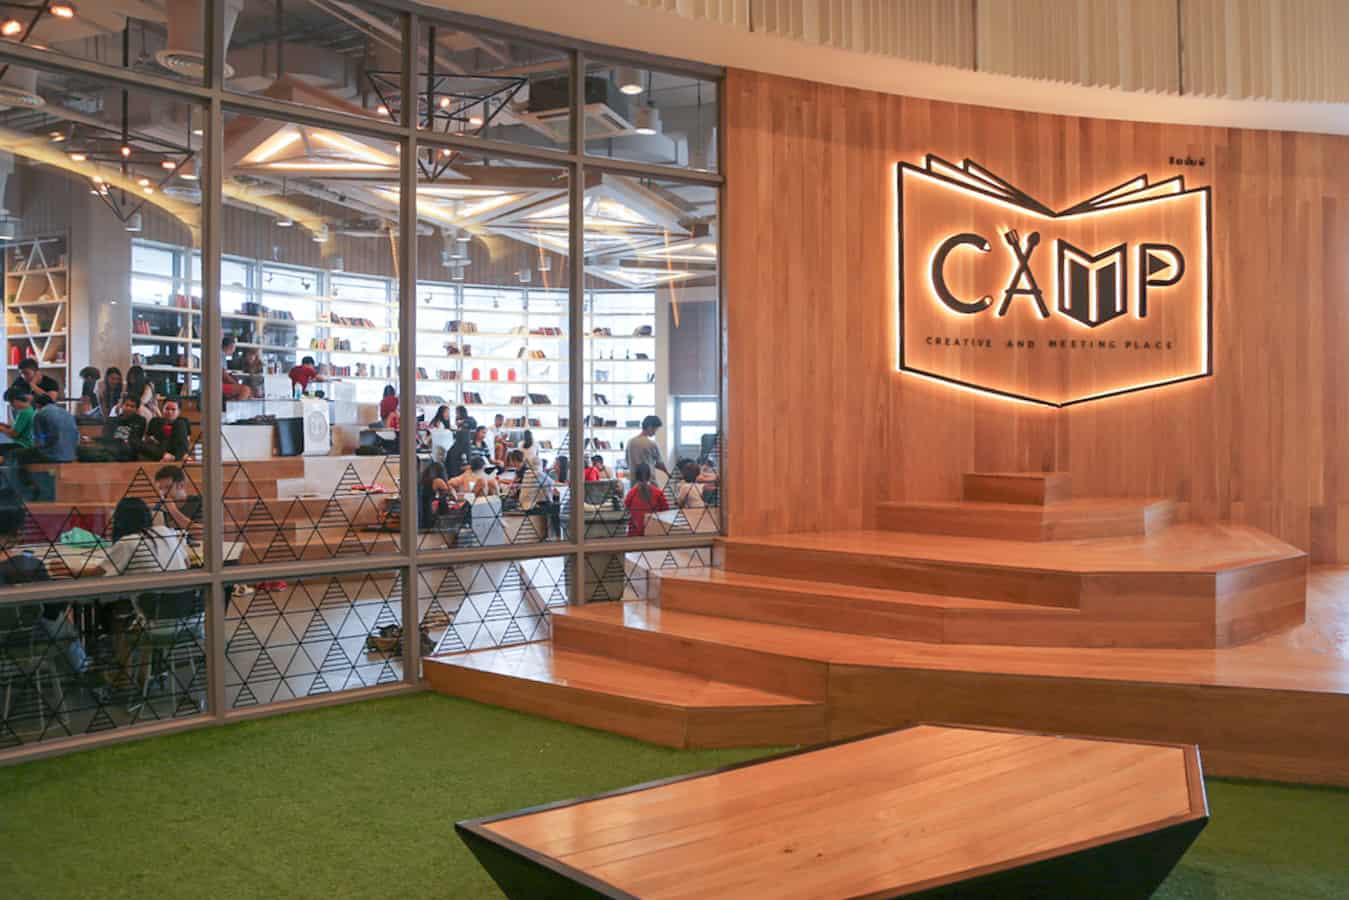 The entrance of CAMP Coworking space in Maya Mall, Chiang Mai